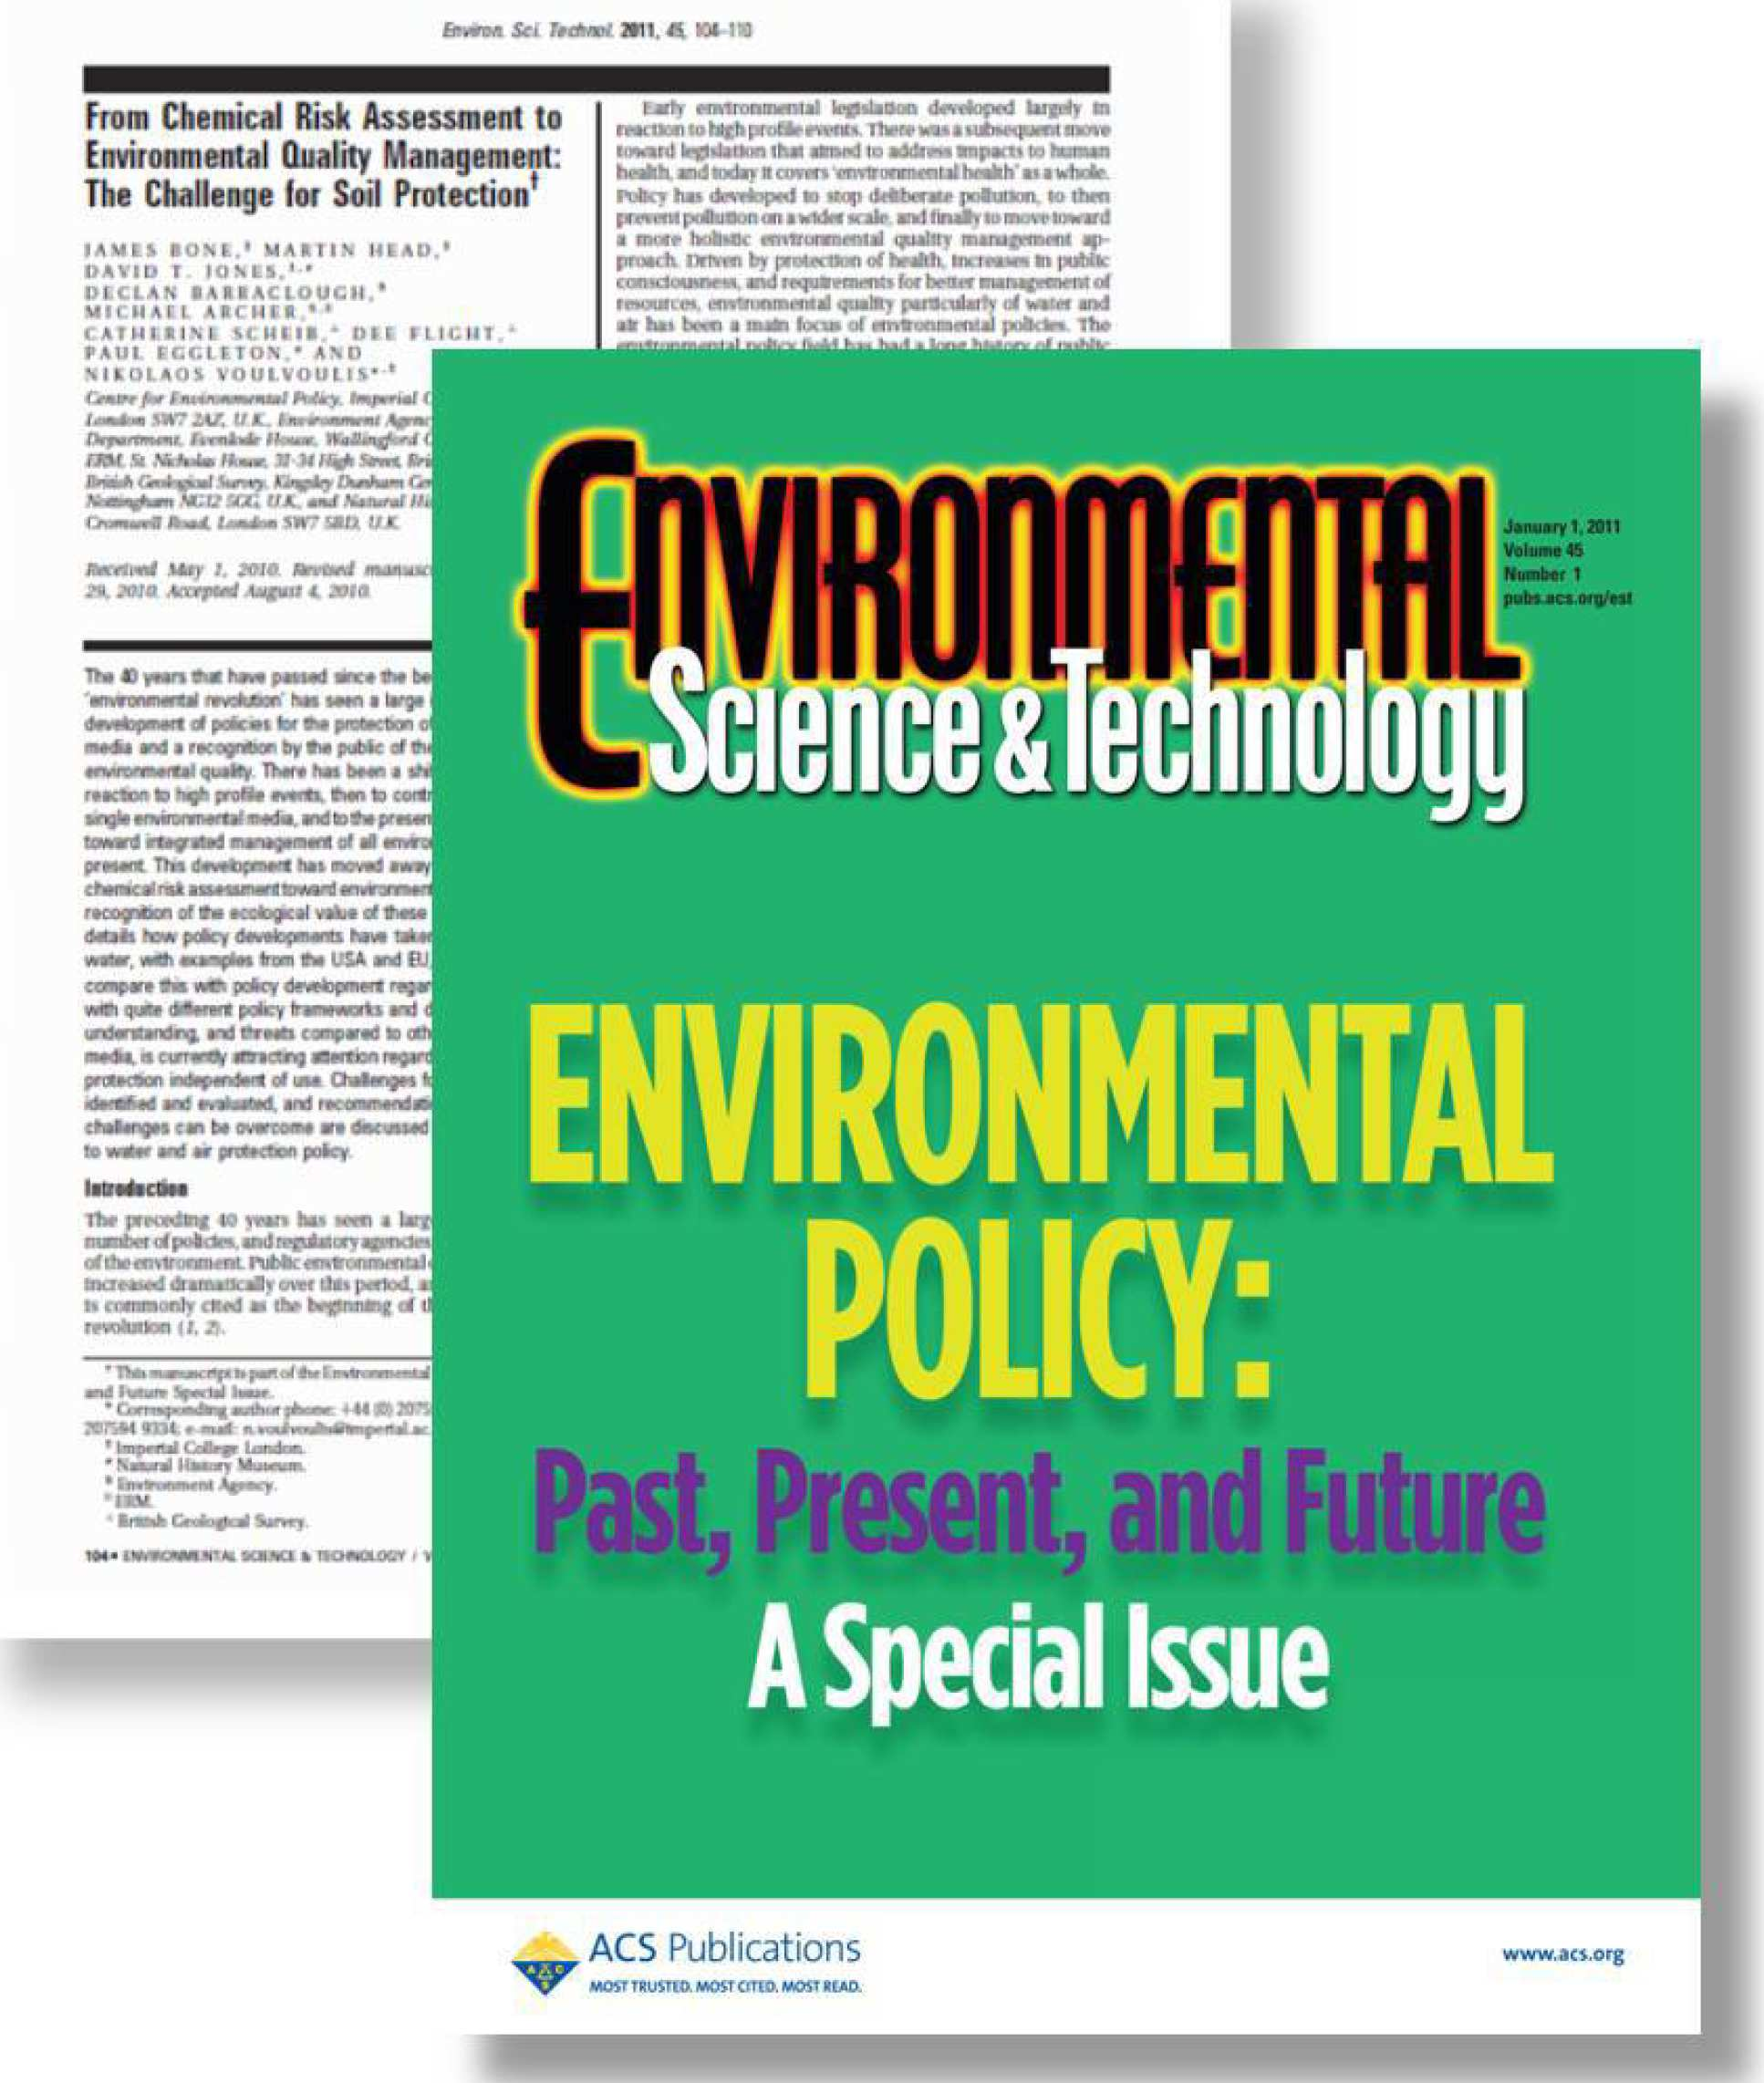 Environmental Policy: Past, Present, and Future